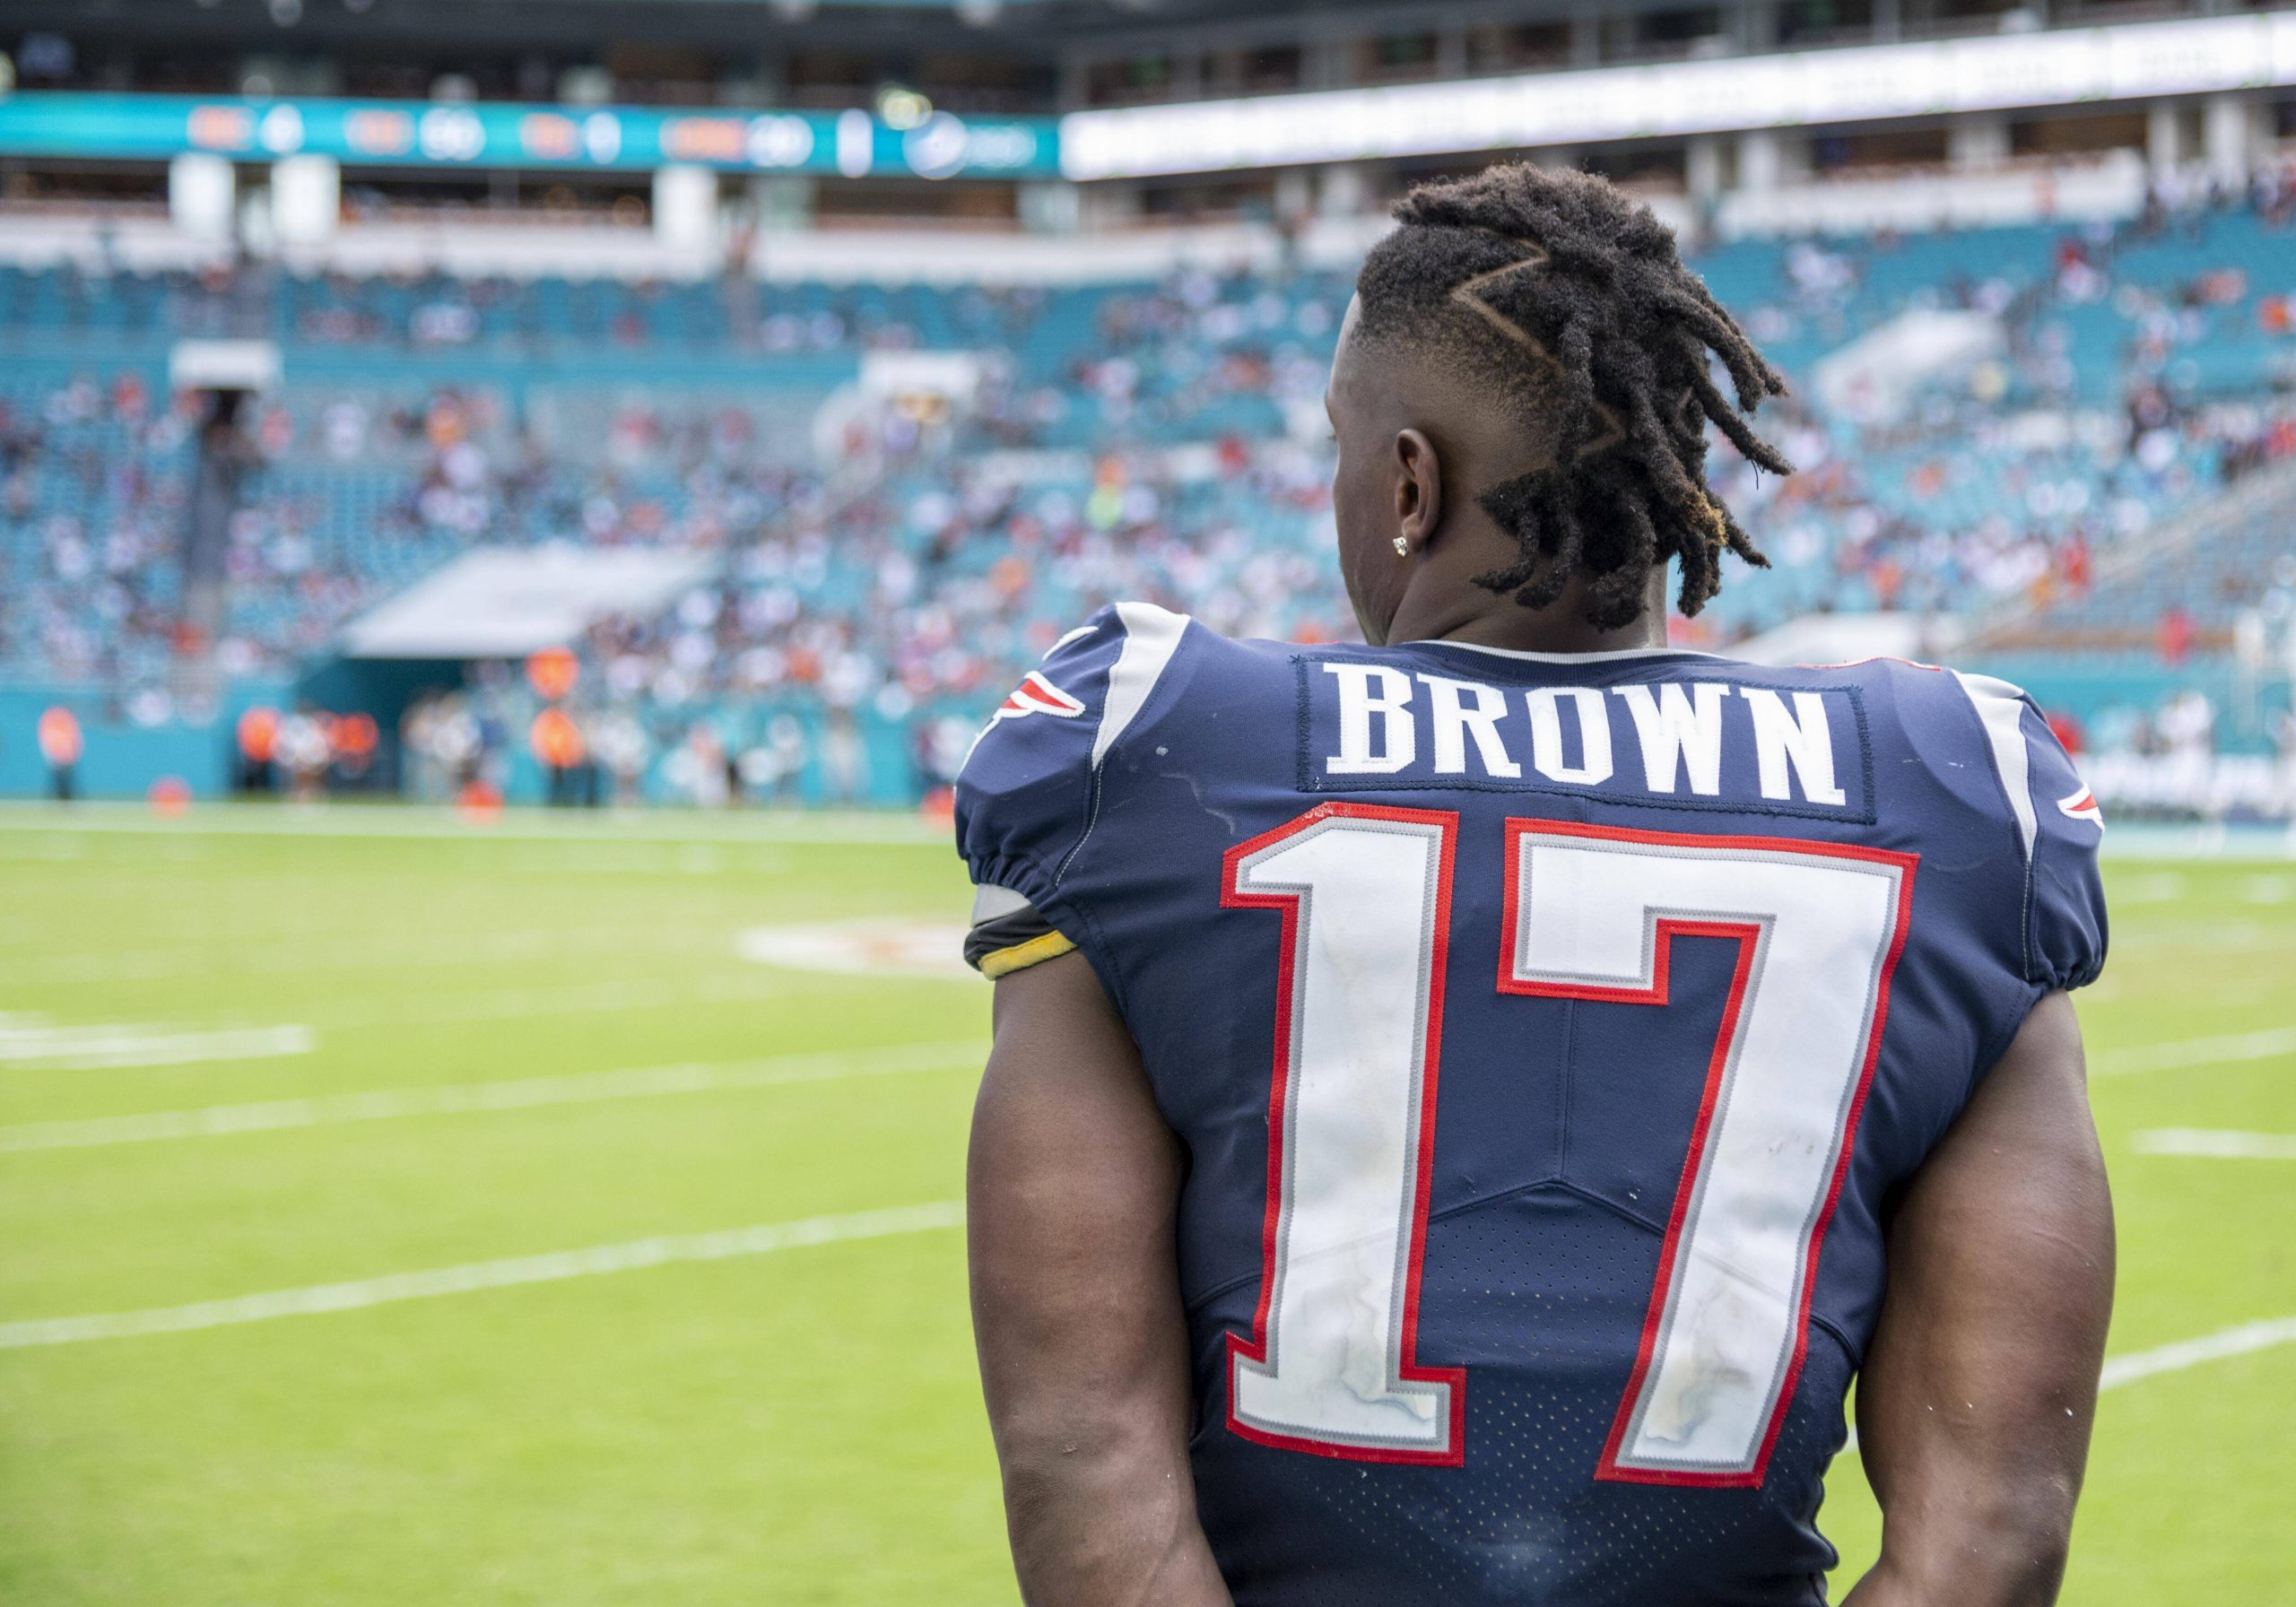 MIAMI GARDENS, FL - SEPTEMBER 15: New England Patriots Wide Receiver Antonio Brown (17) watches the game on the sidelin